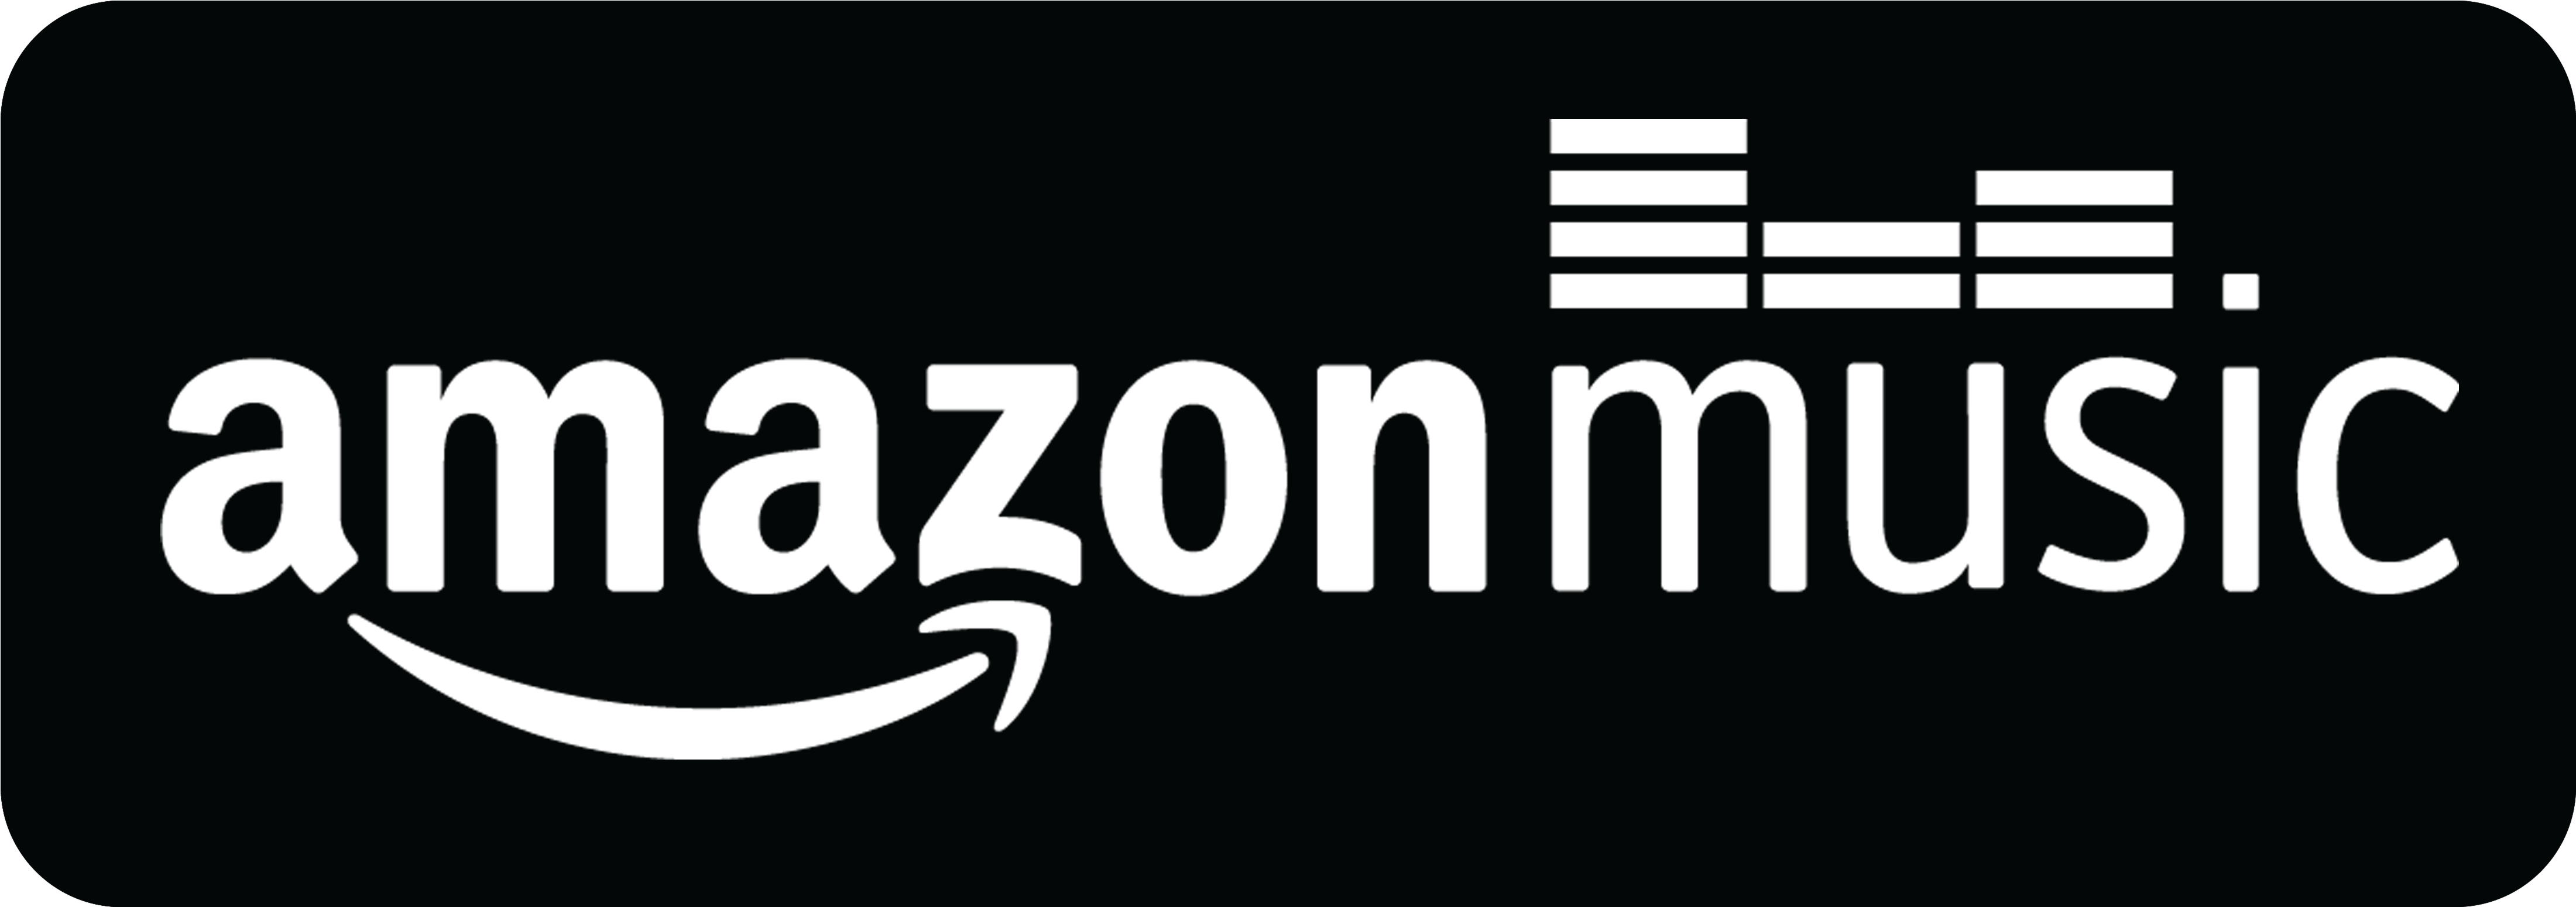 Amazon Music Logo - Download Link Amazon Music - Amazon Music Logo Png Transparent ...